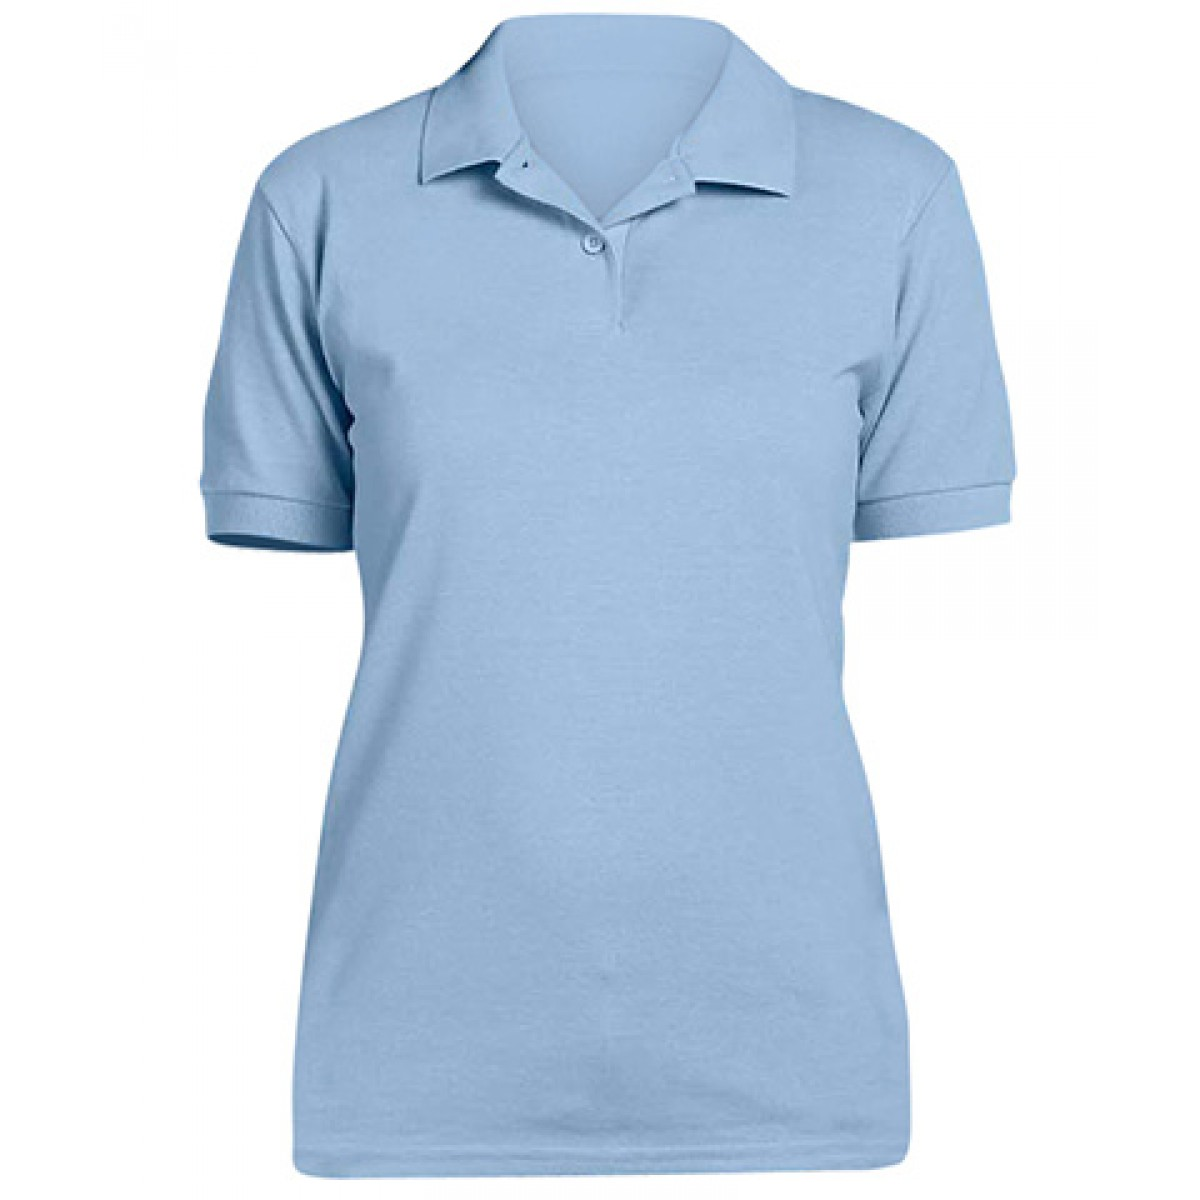 Ladies' 6.5 oz. Piqué Sport Shirt-Blue-S